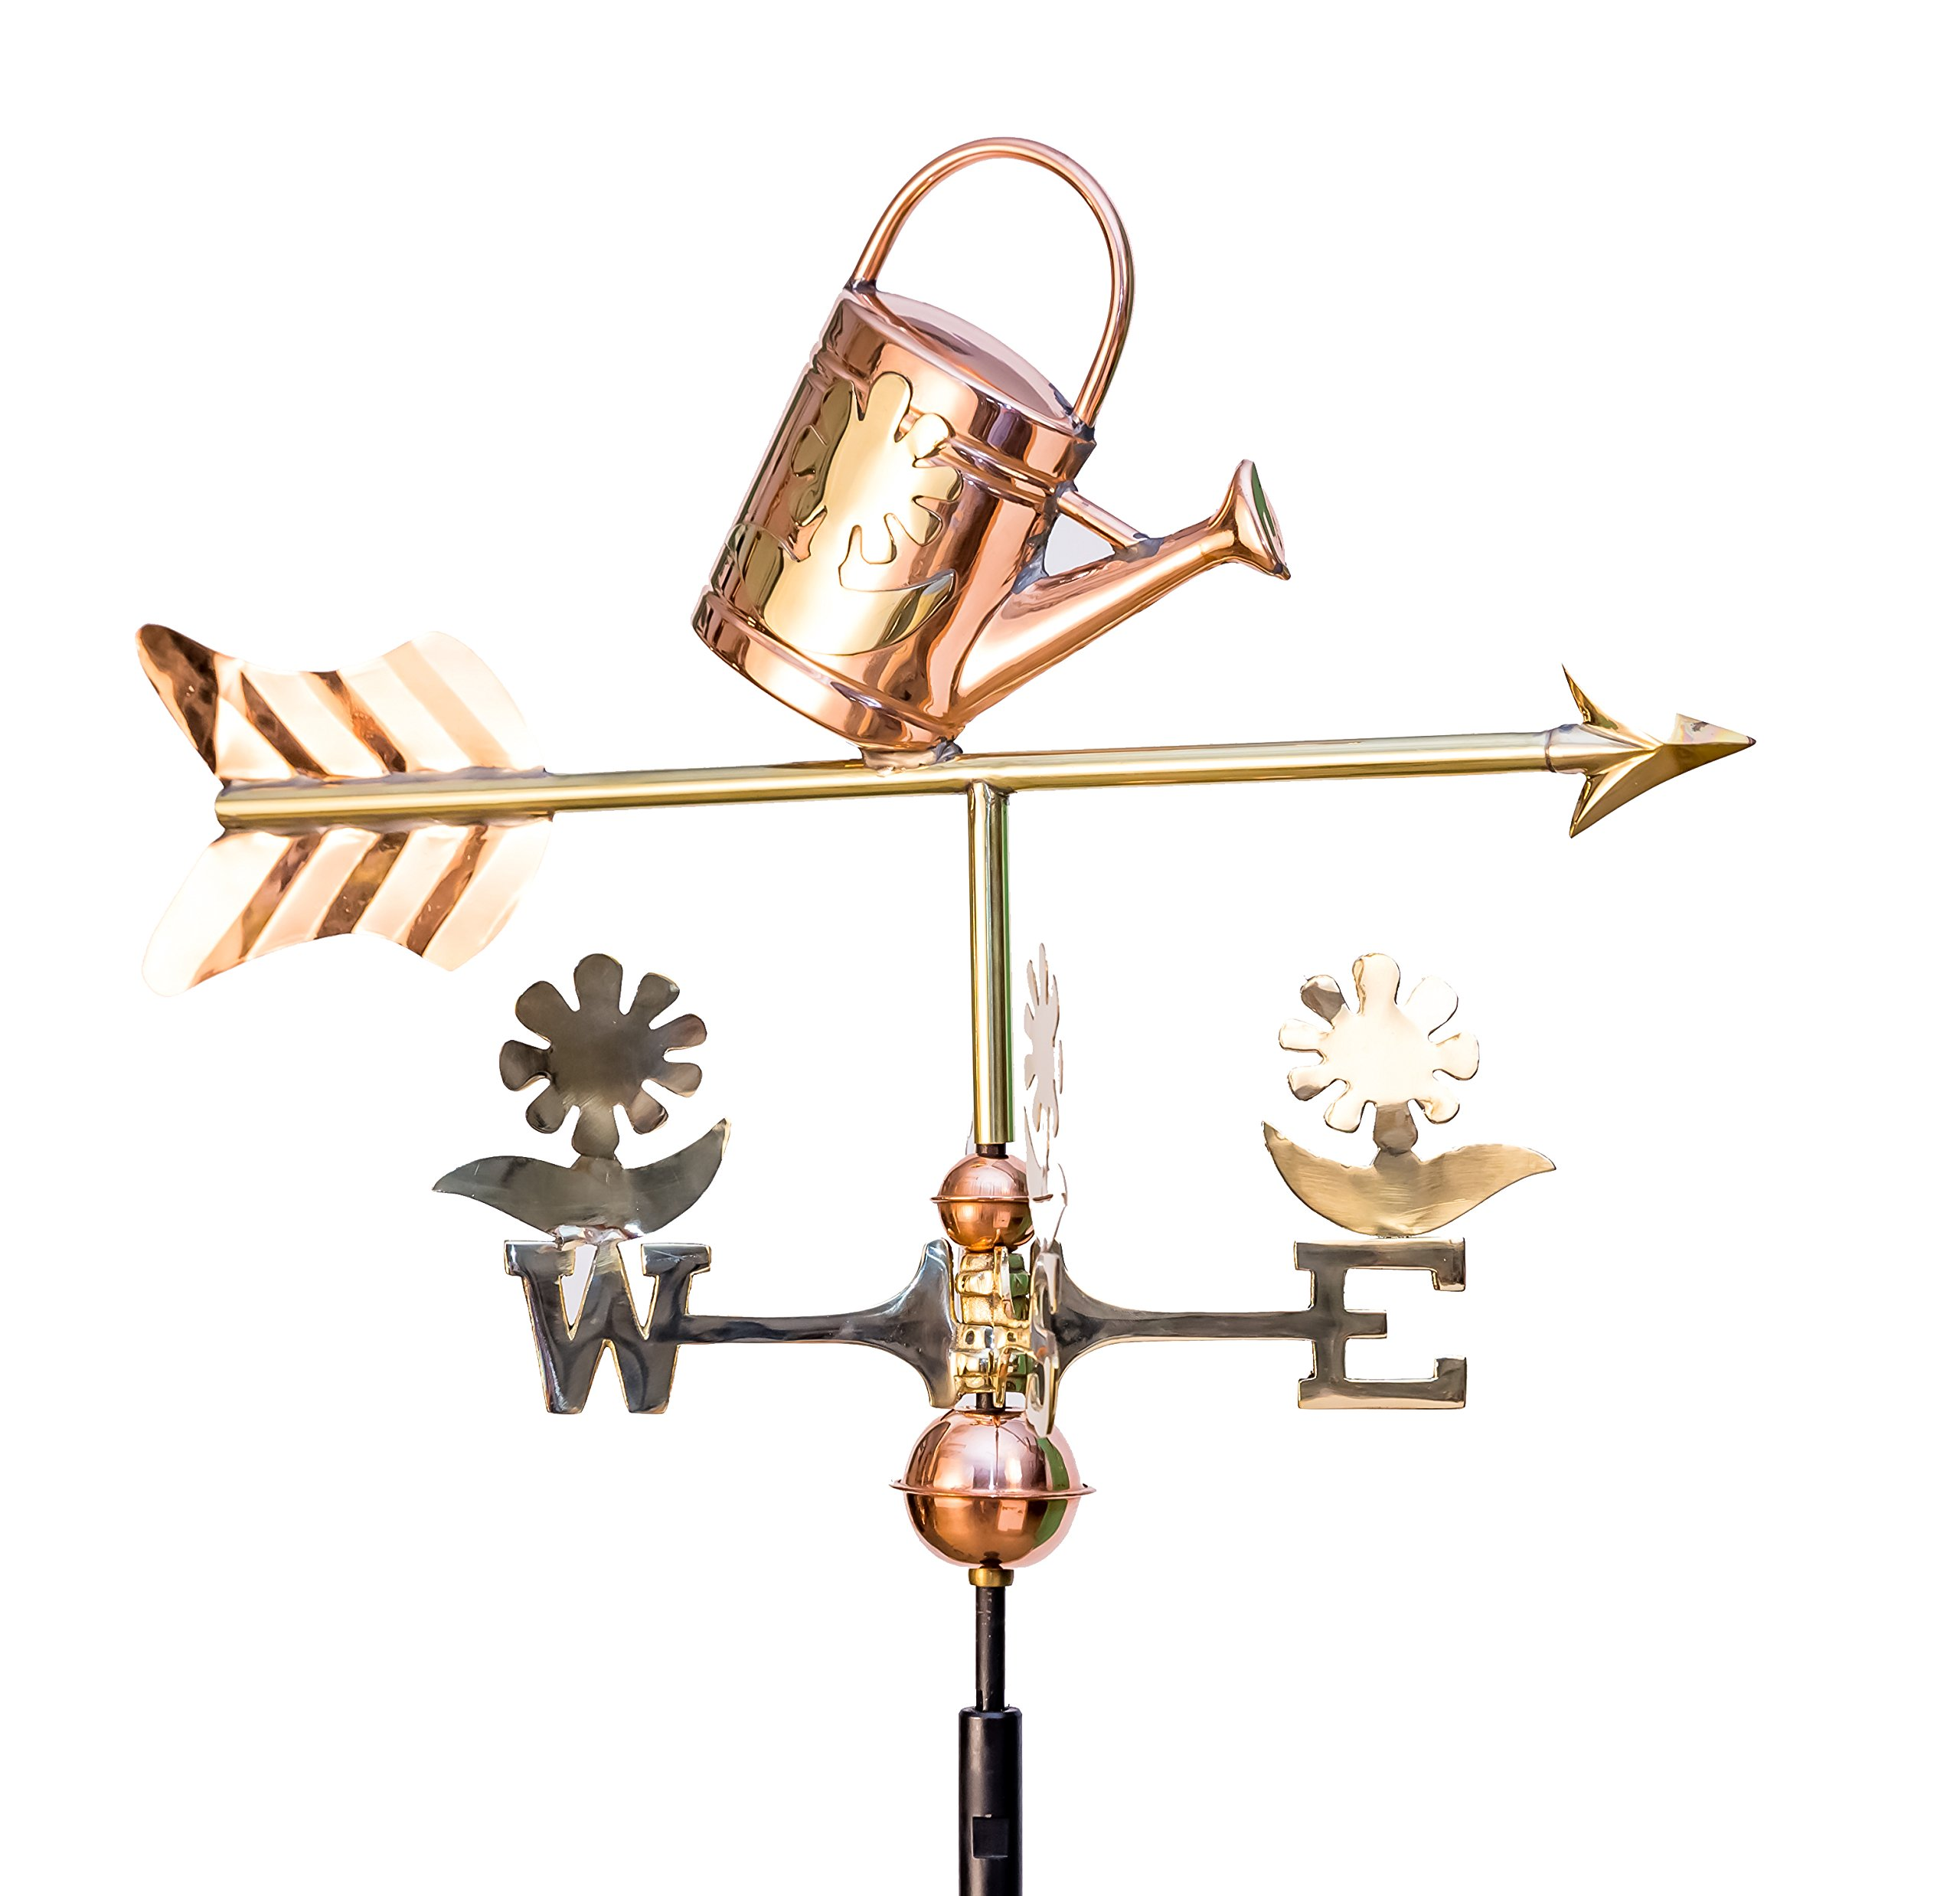 East Coast Weathervanes and Cupolas Garden Watering Can Weathervane Polished Copper (Copper, W/ Roof Mount)